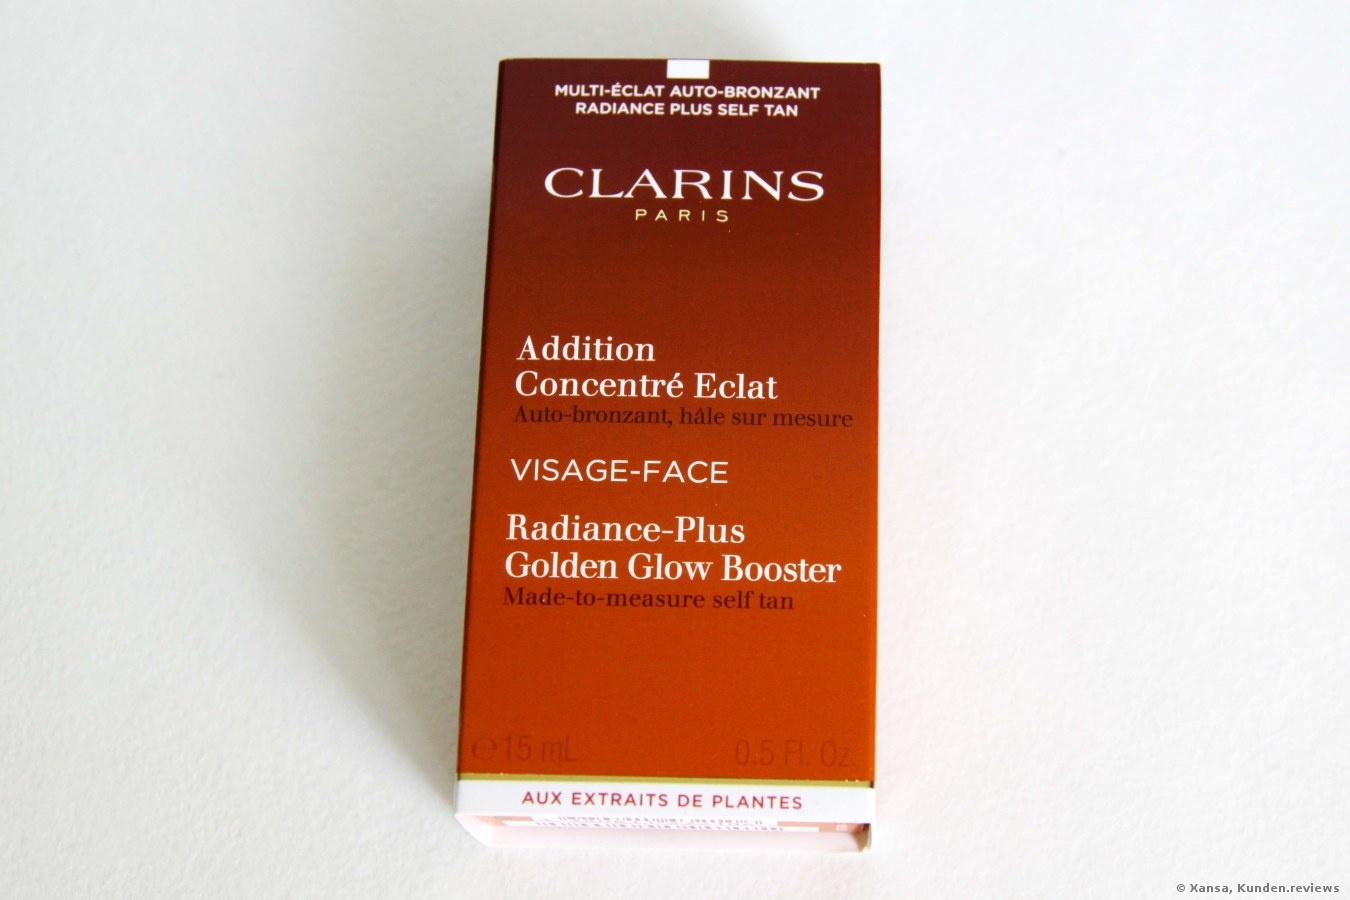 Clarins Addition Concentré Eclat Auto-bronzant Radiance Plus Golden Glow Booster Selbstbräuner